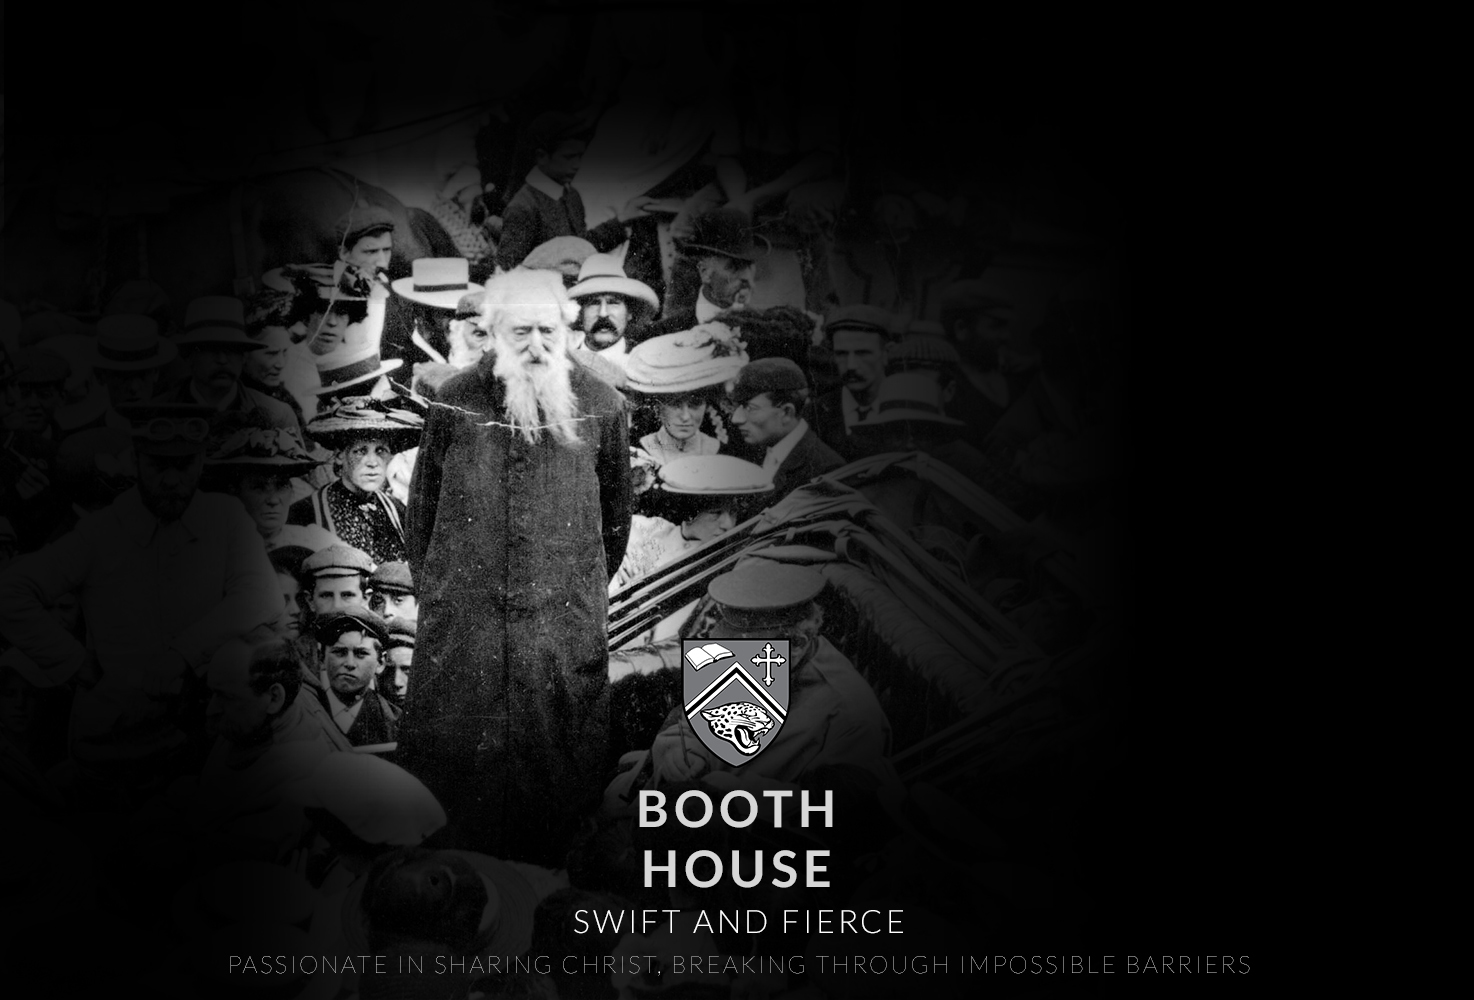 Booth House Aw1 Reversed